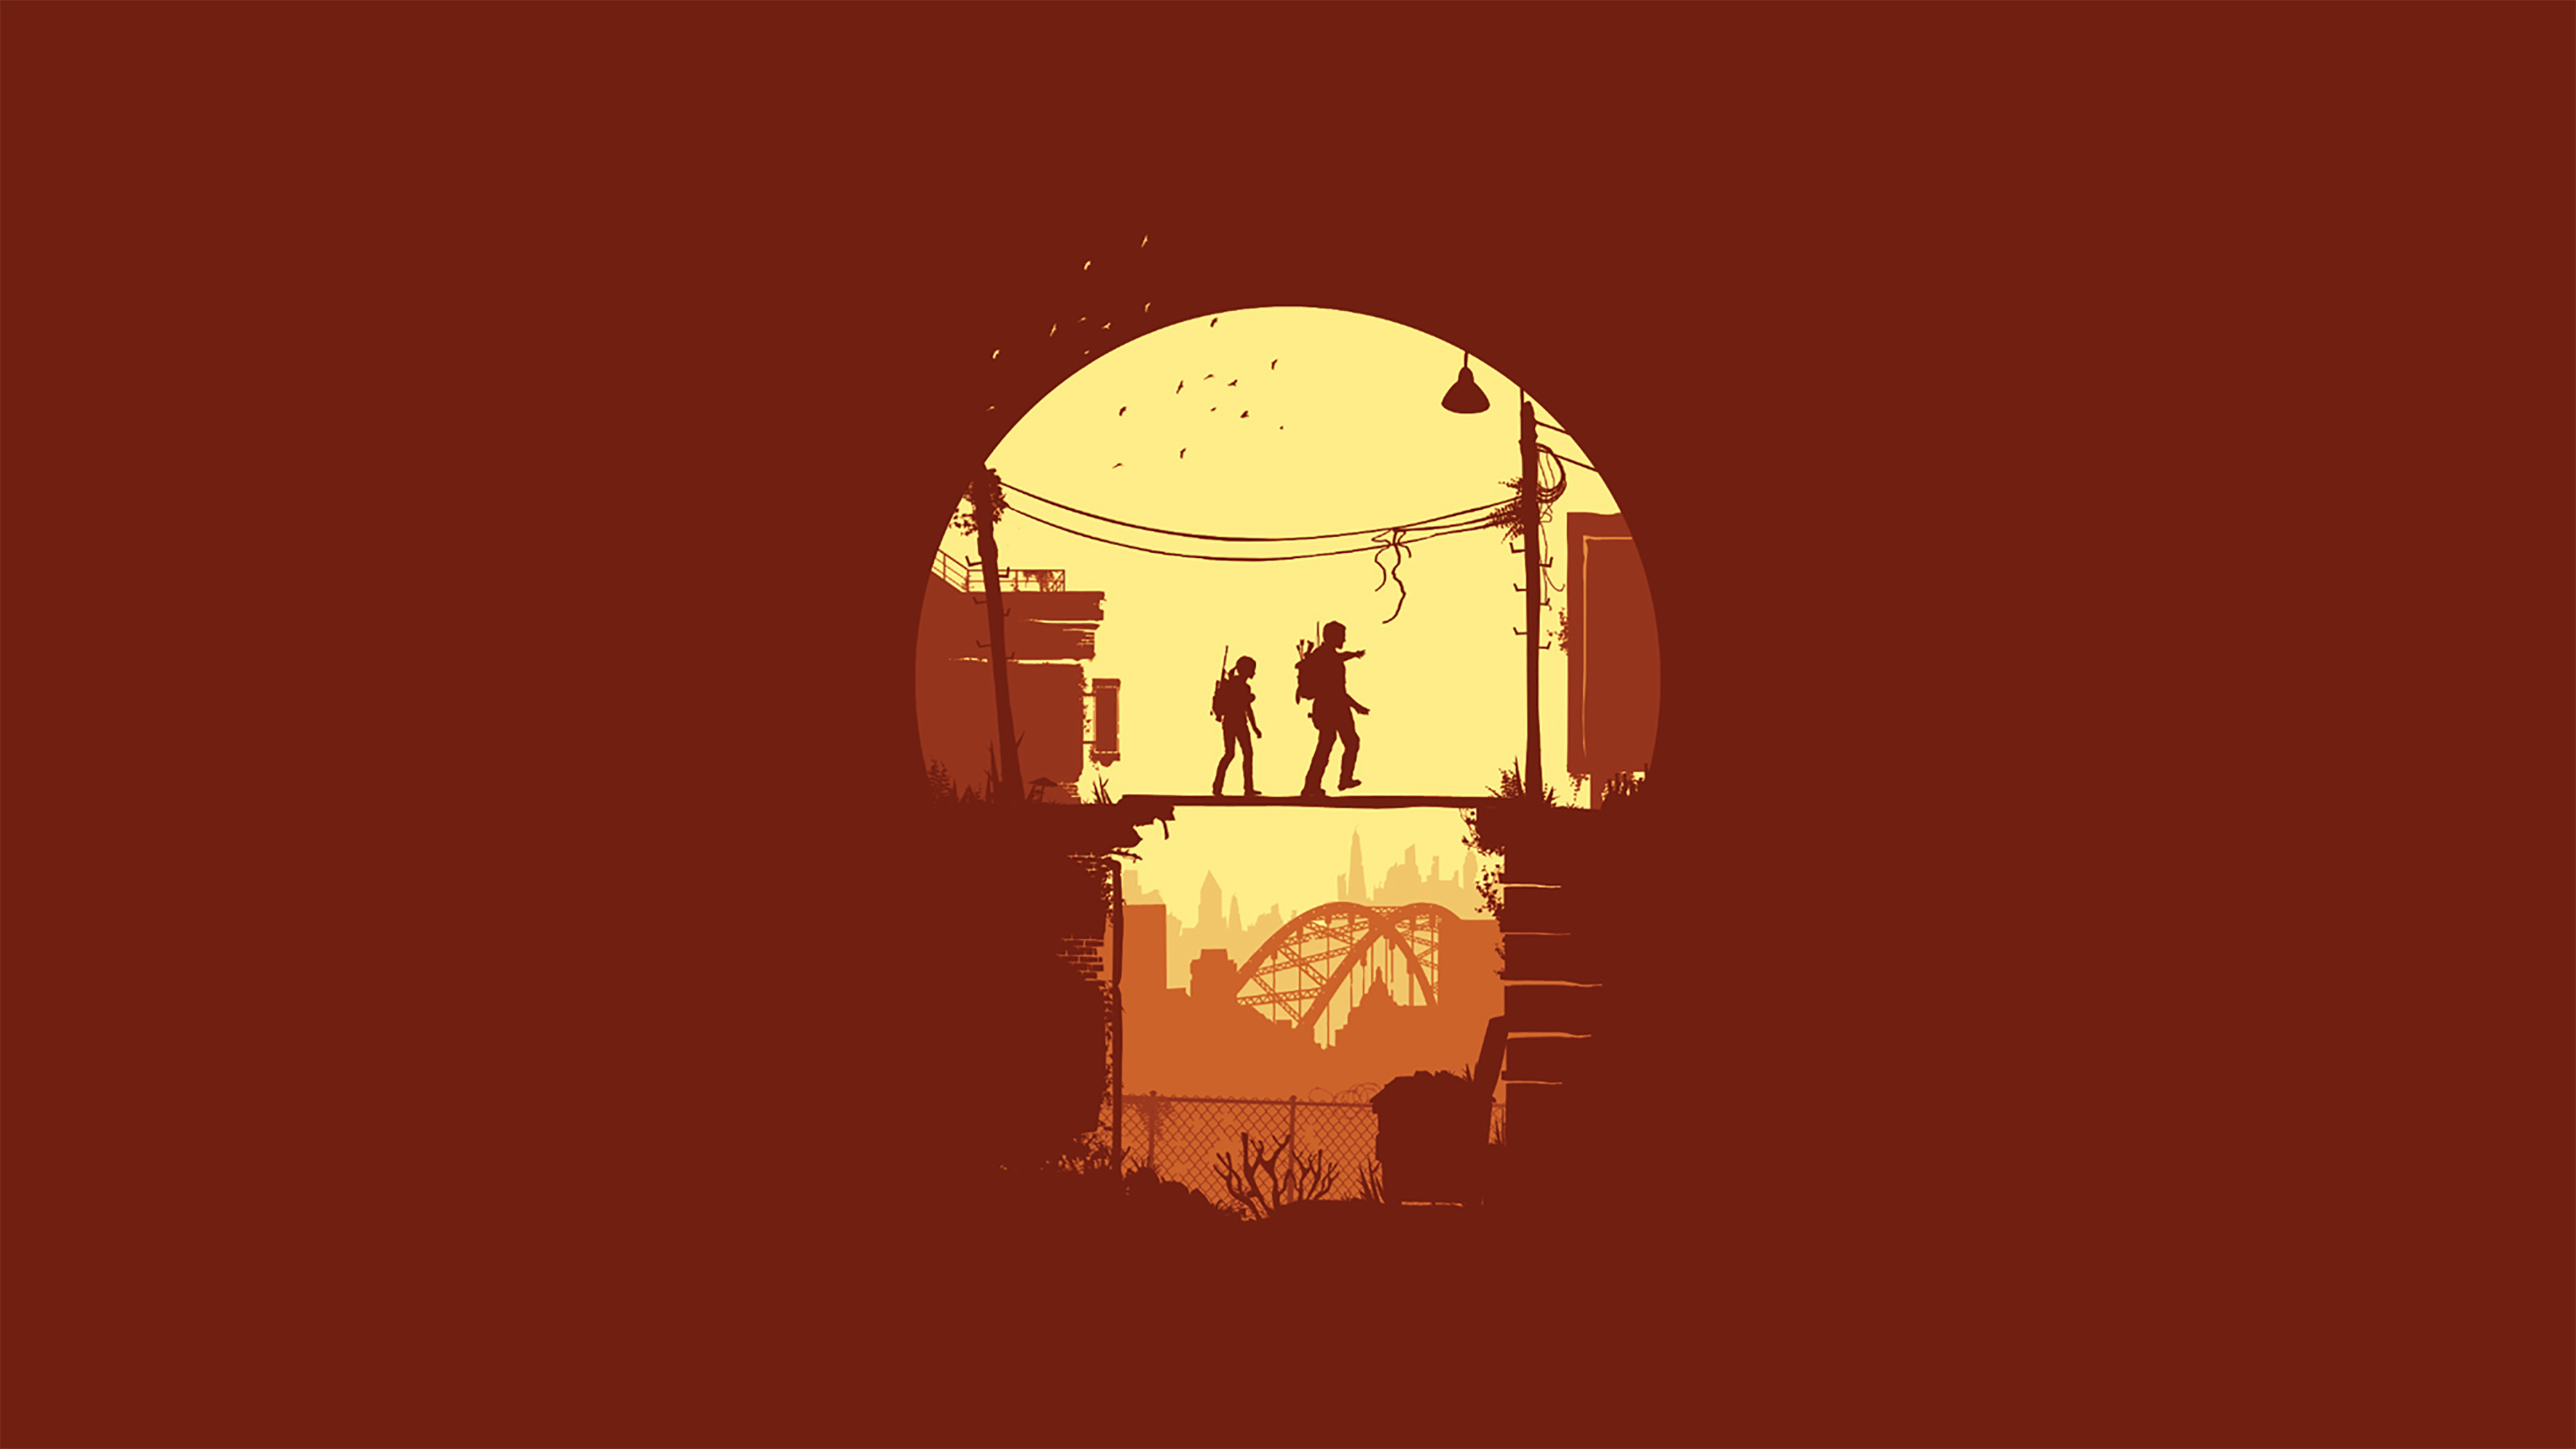 Joel And Ellie The Last Of Us Minimal Wallpaper Hd Minimalist 4k